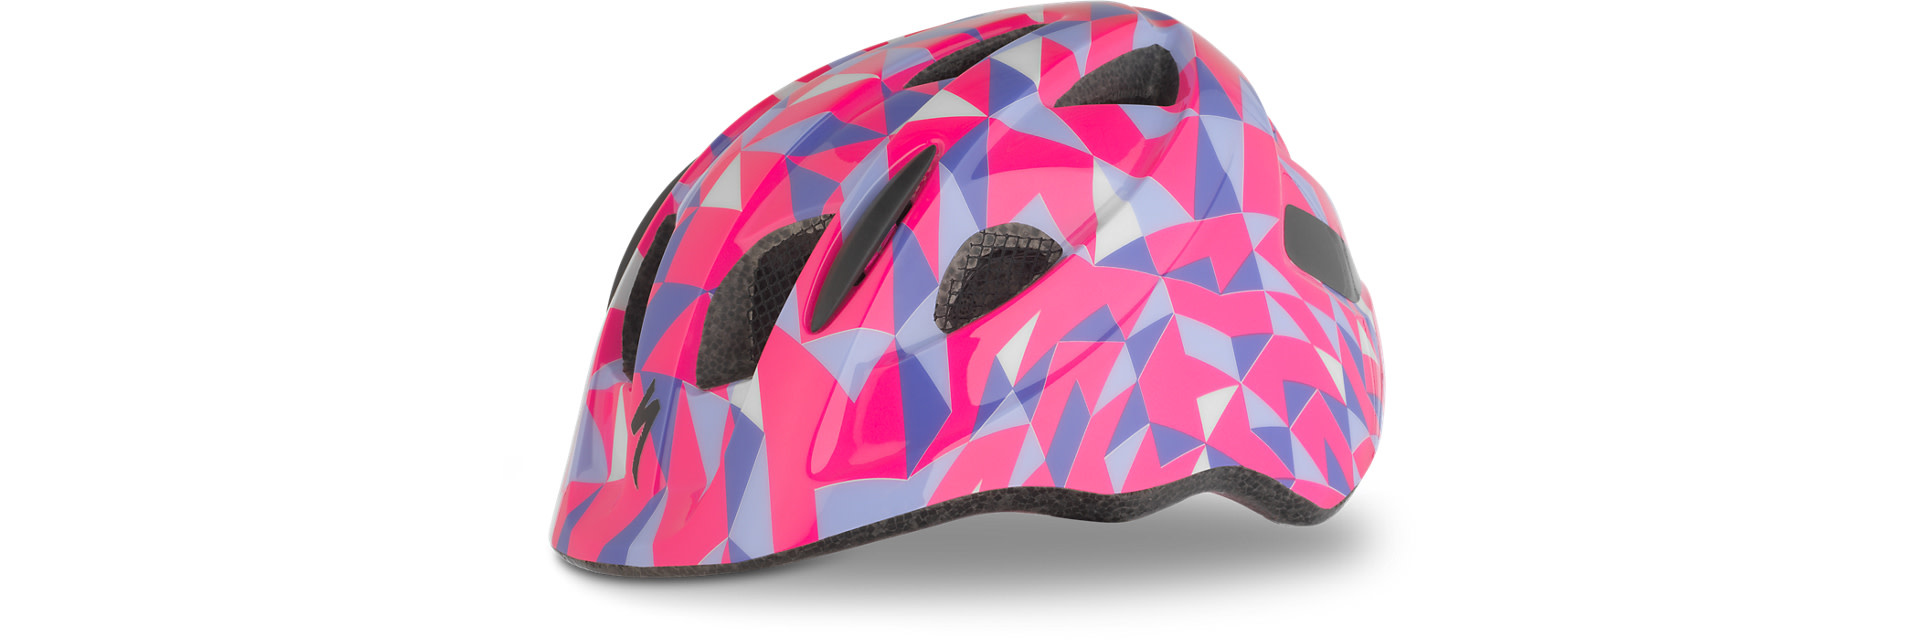 Specialized Helmet Mio Toddler Pink Geo